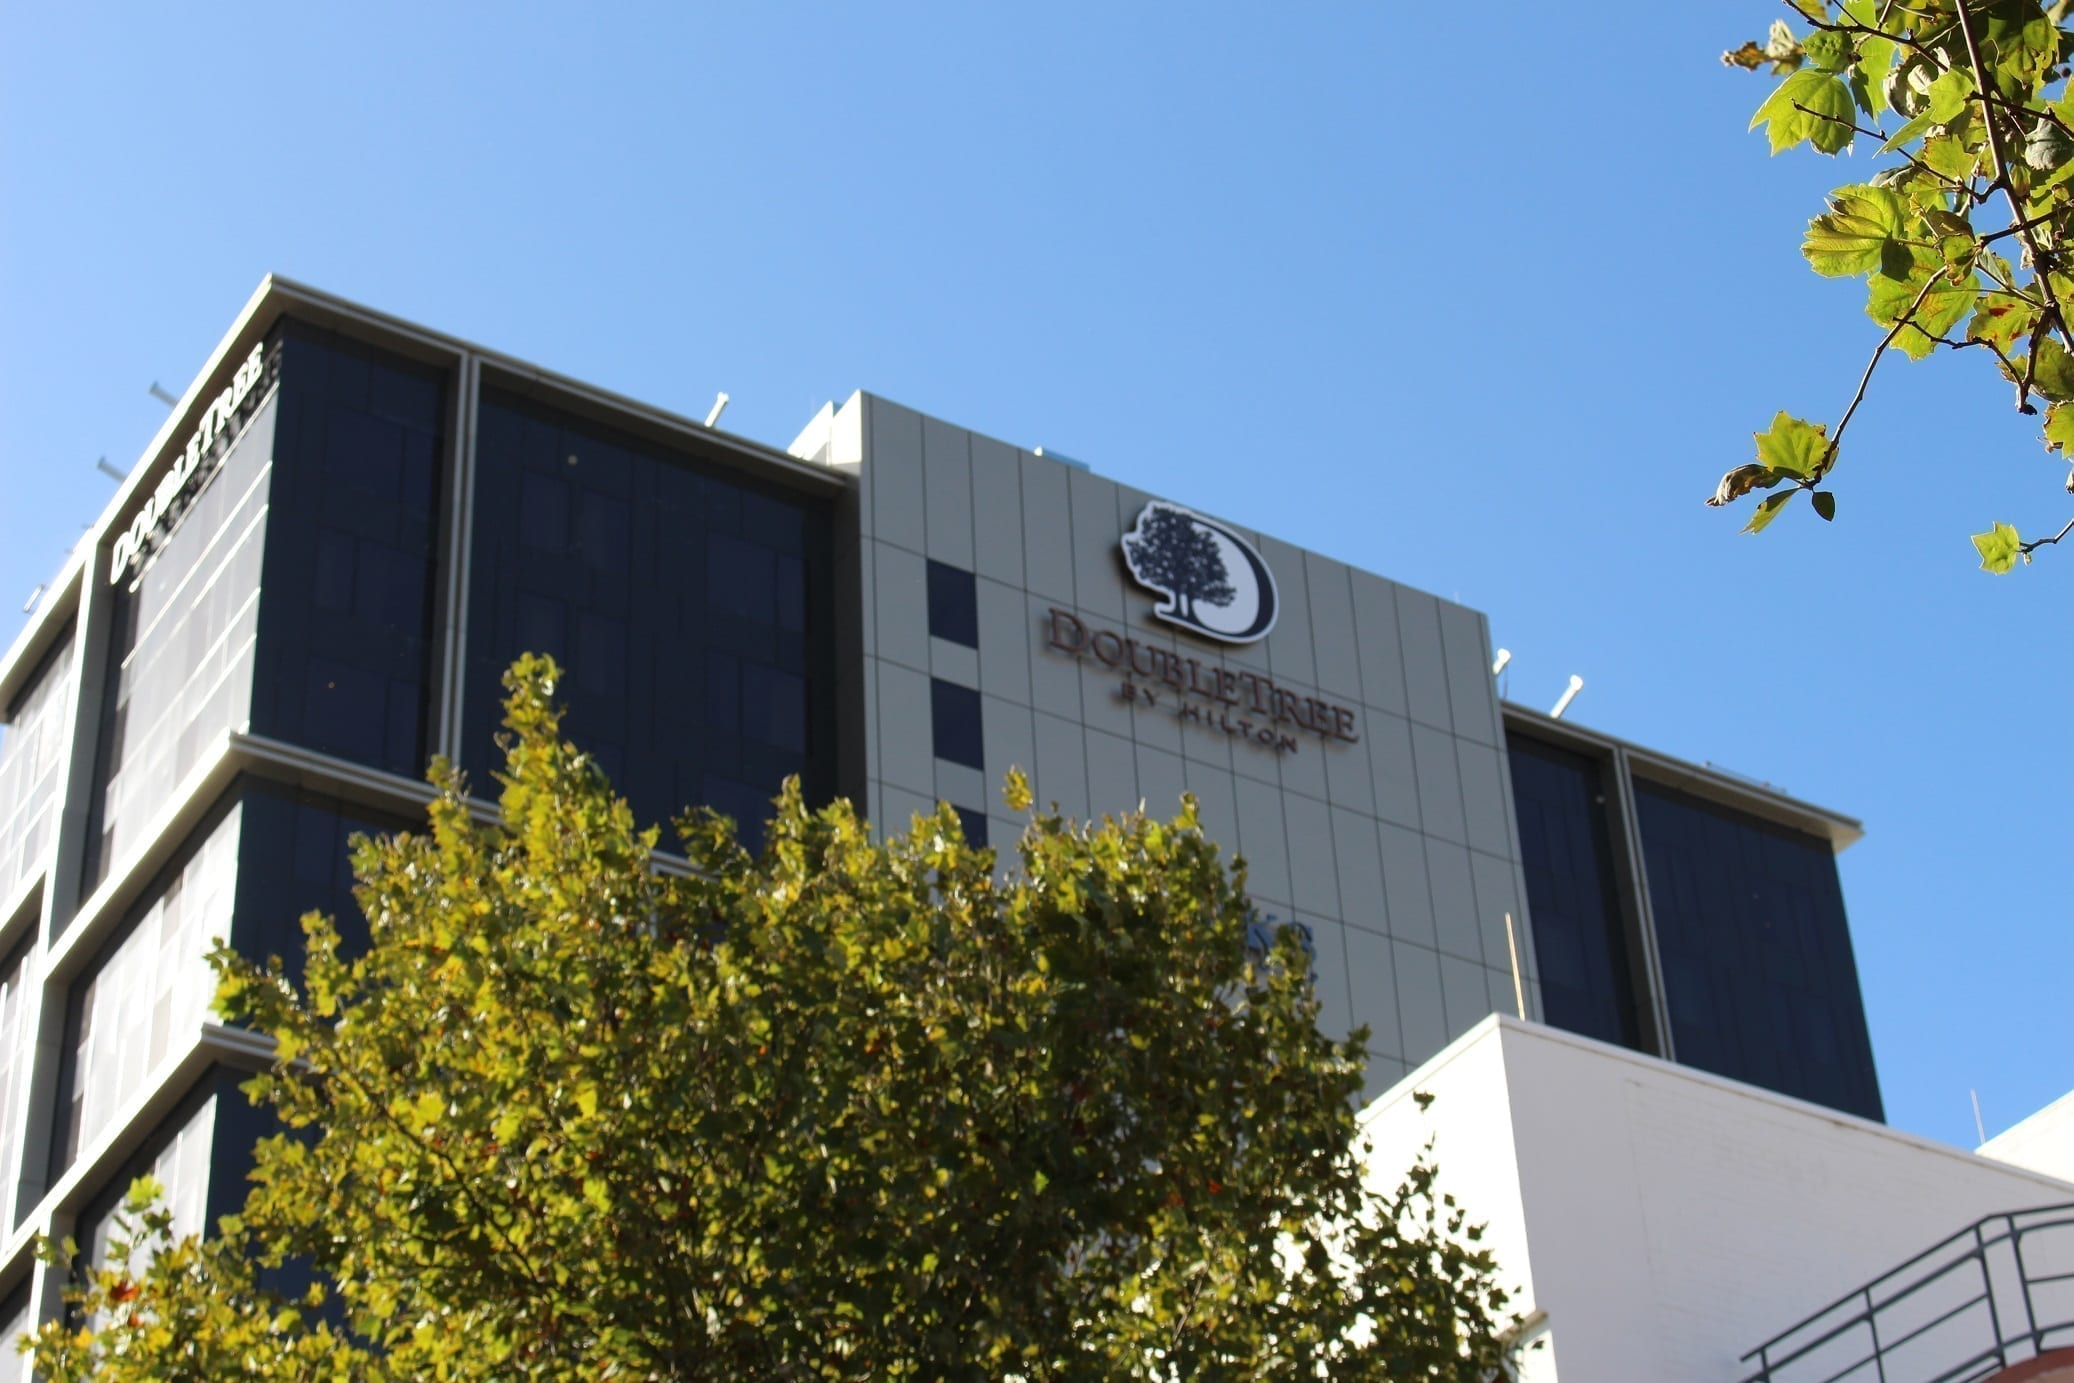 Doubletree by Hilton Hotel Northbridge